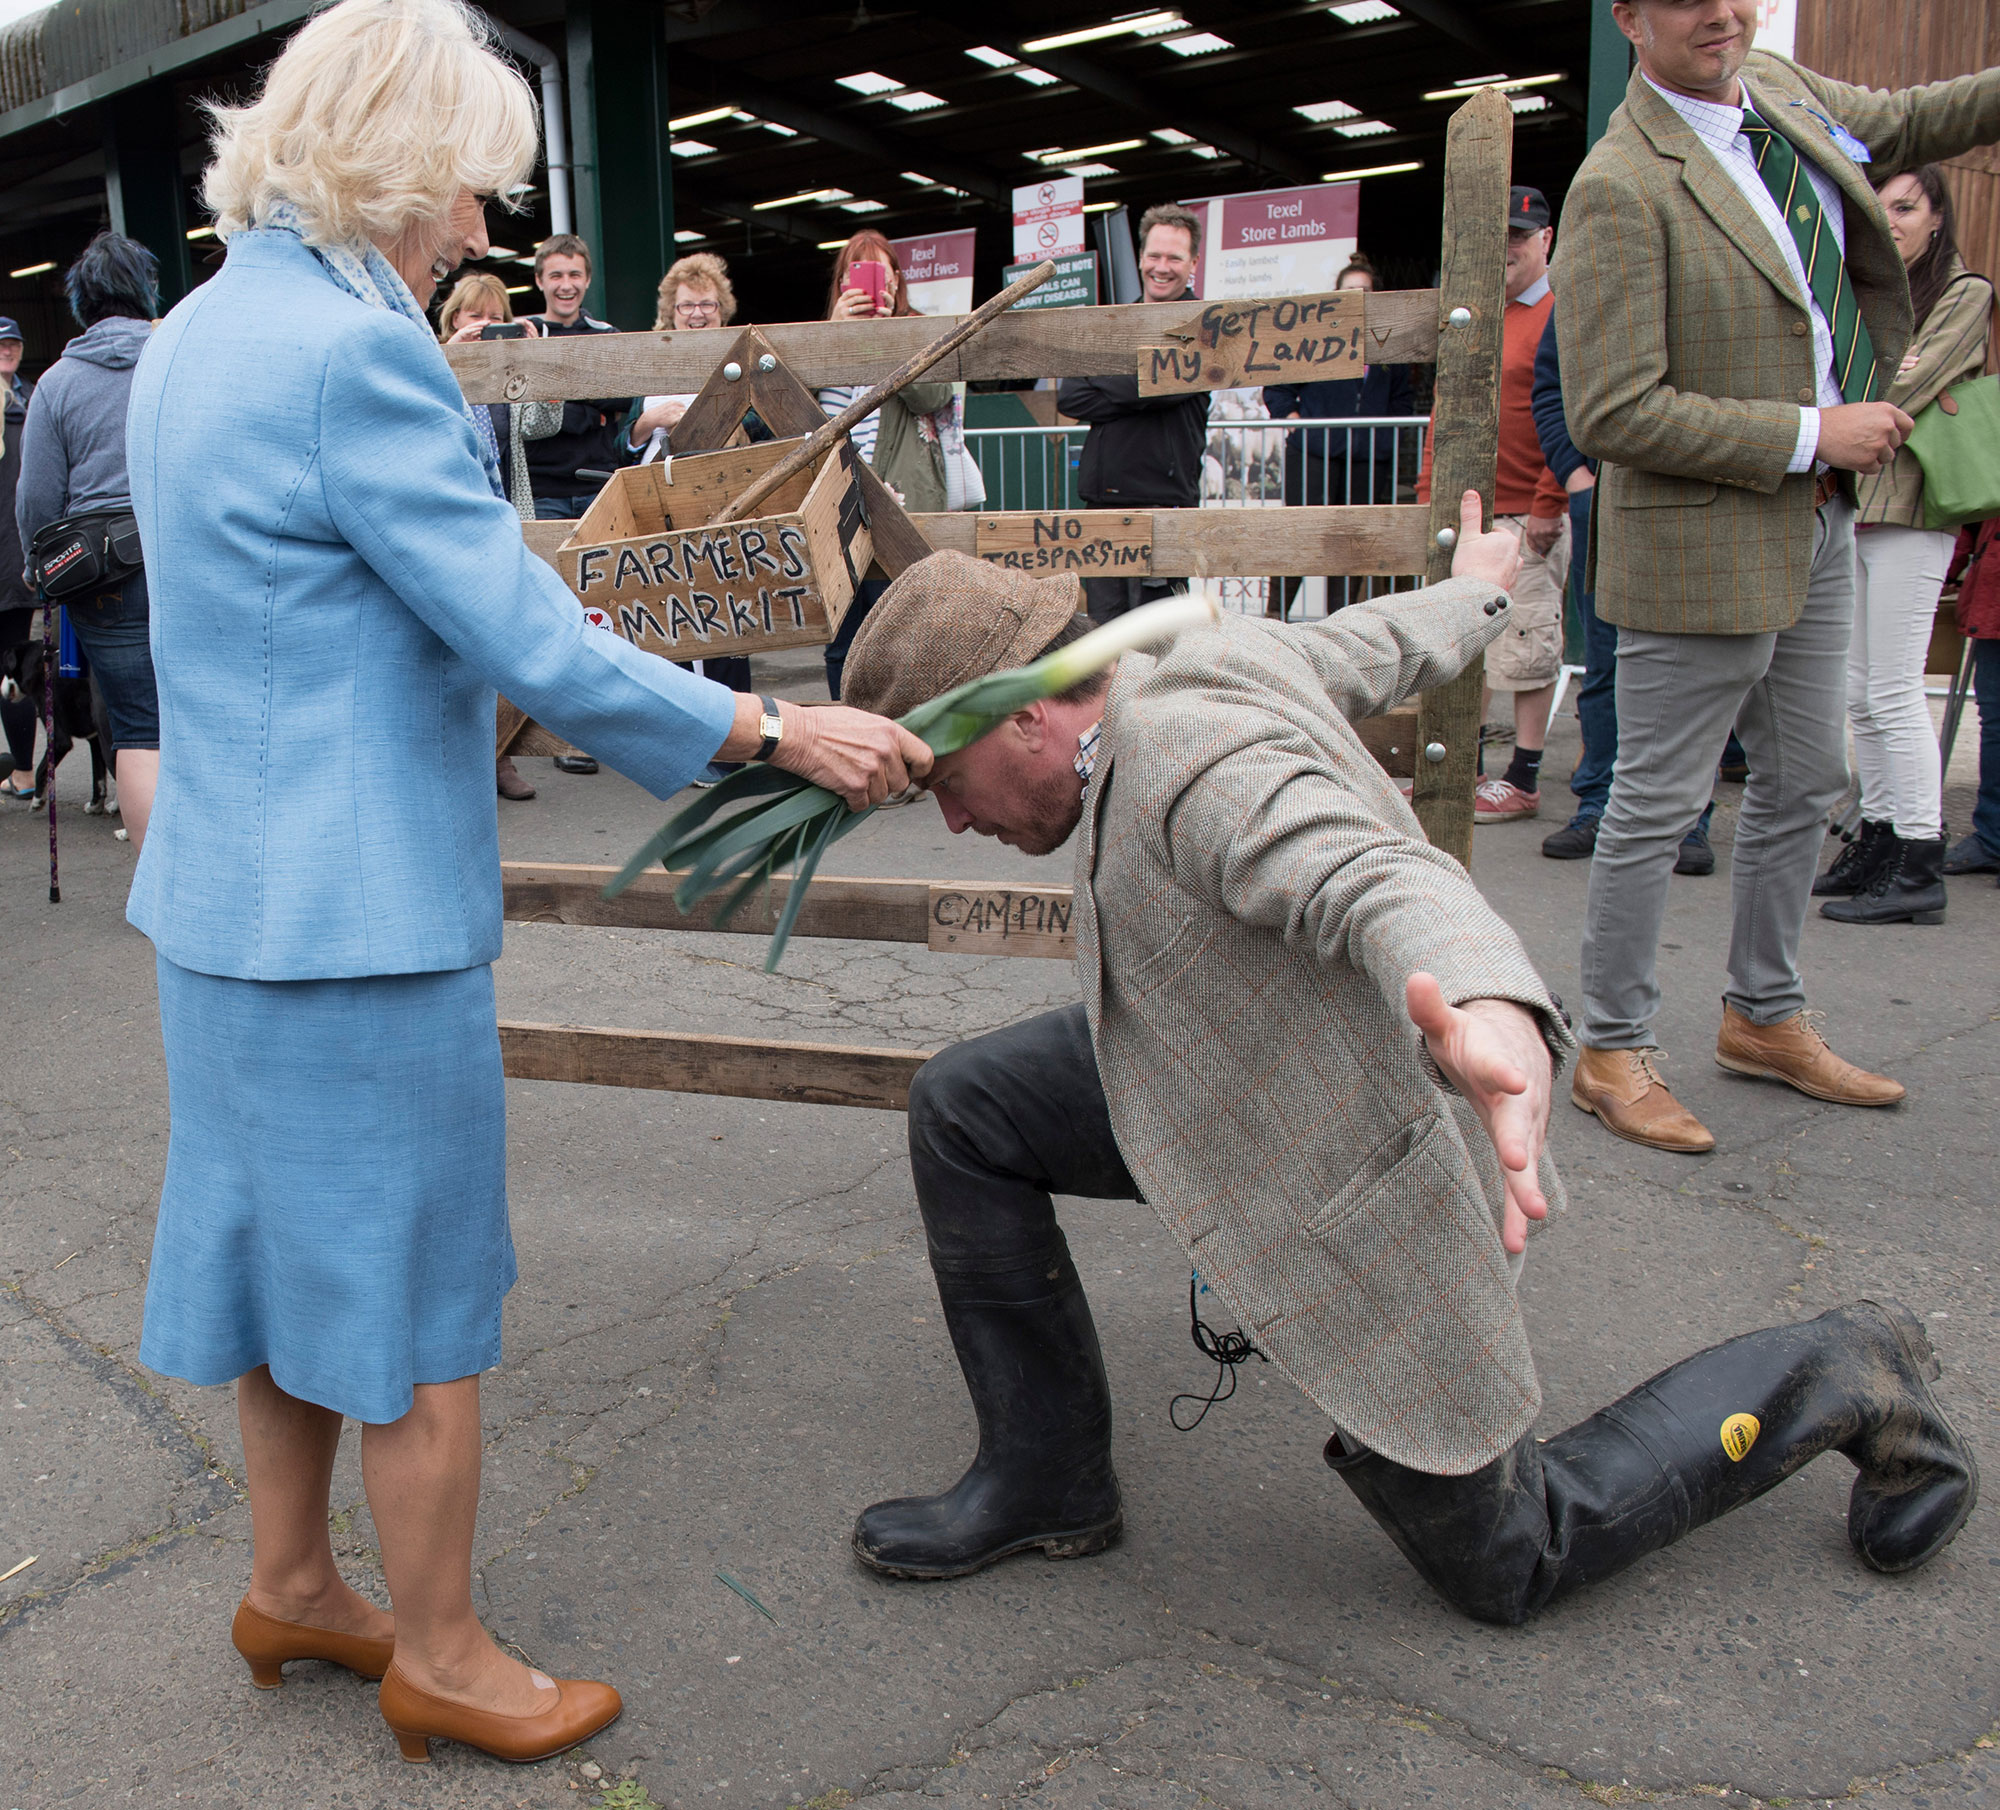 The Duchess of Cornwall Attends The South Of England Show